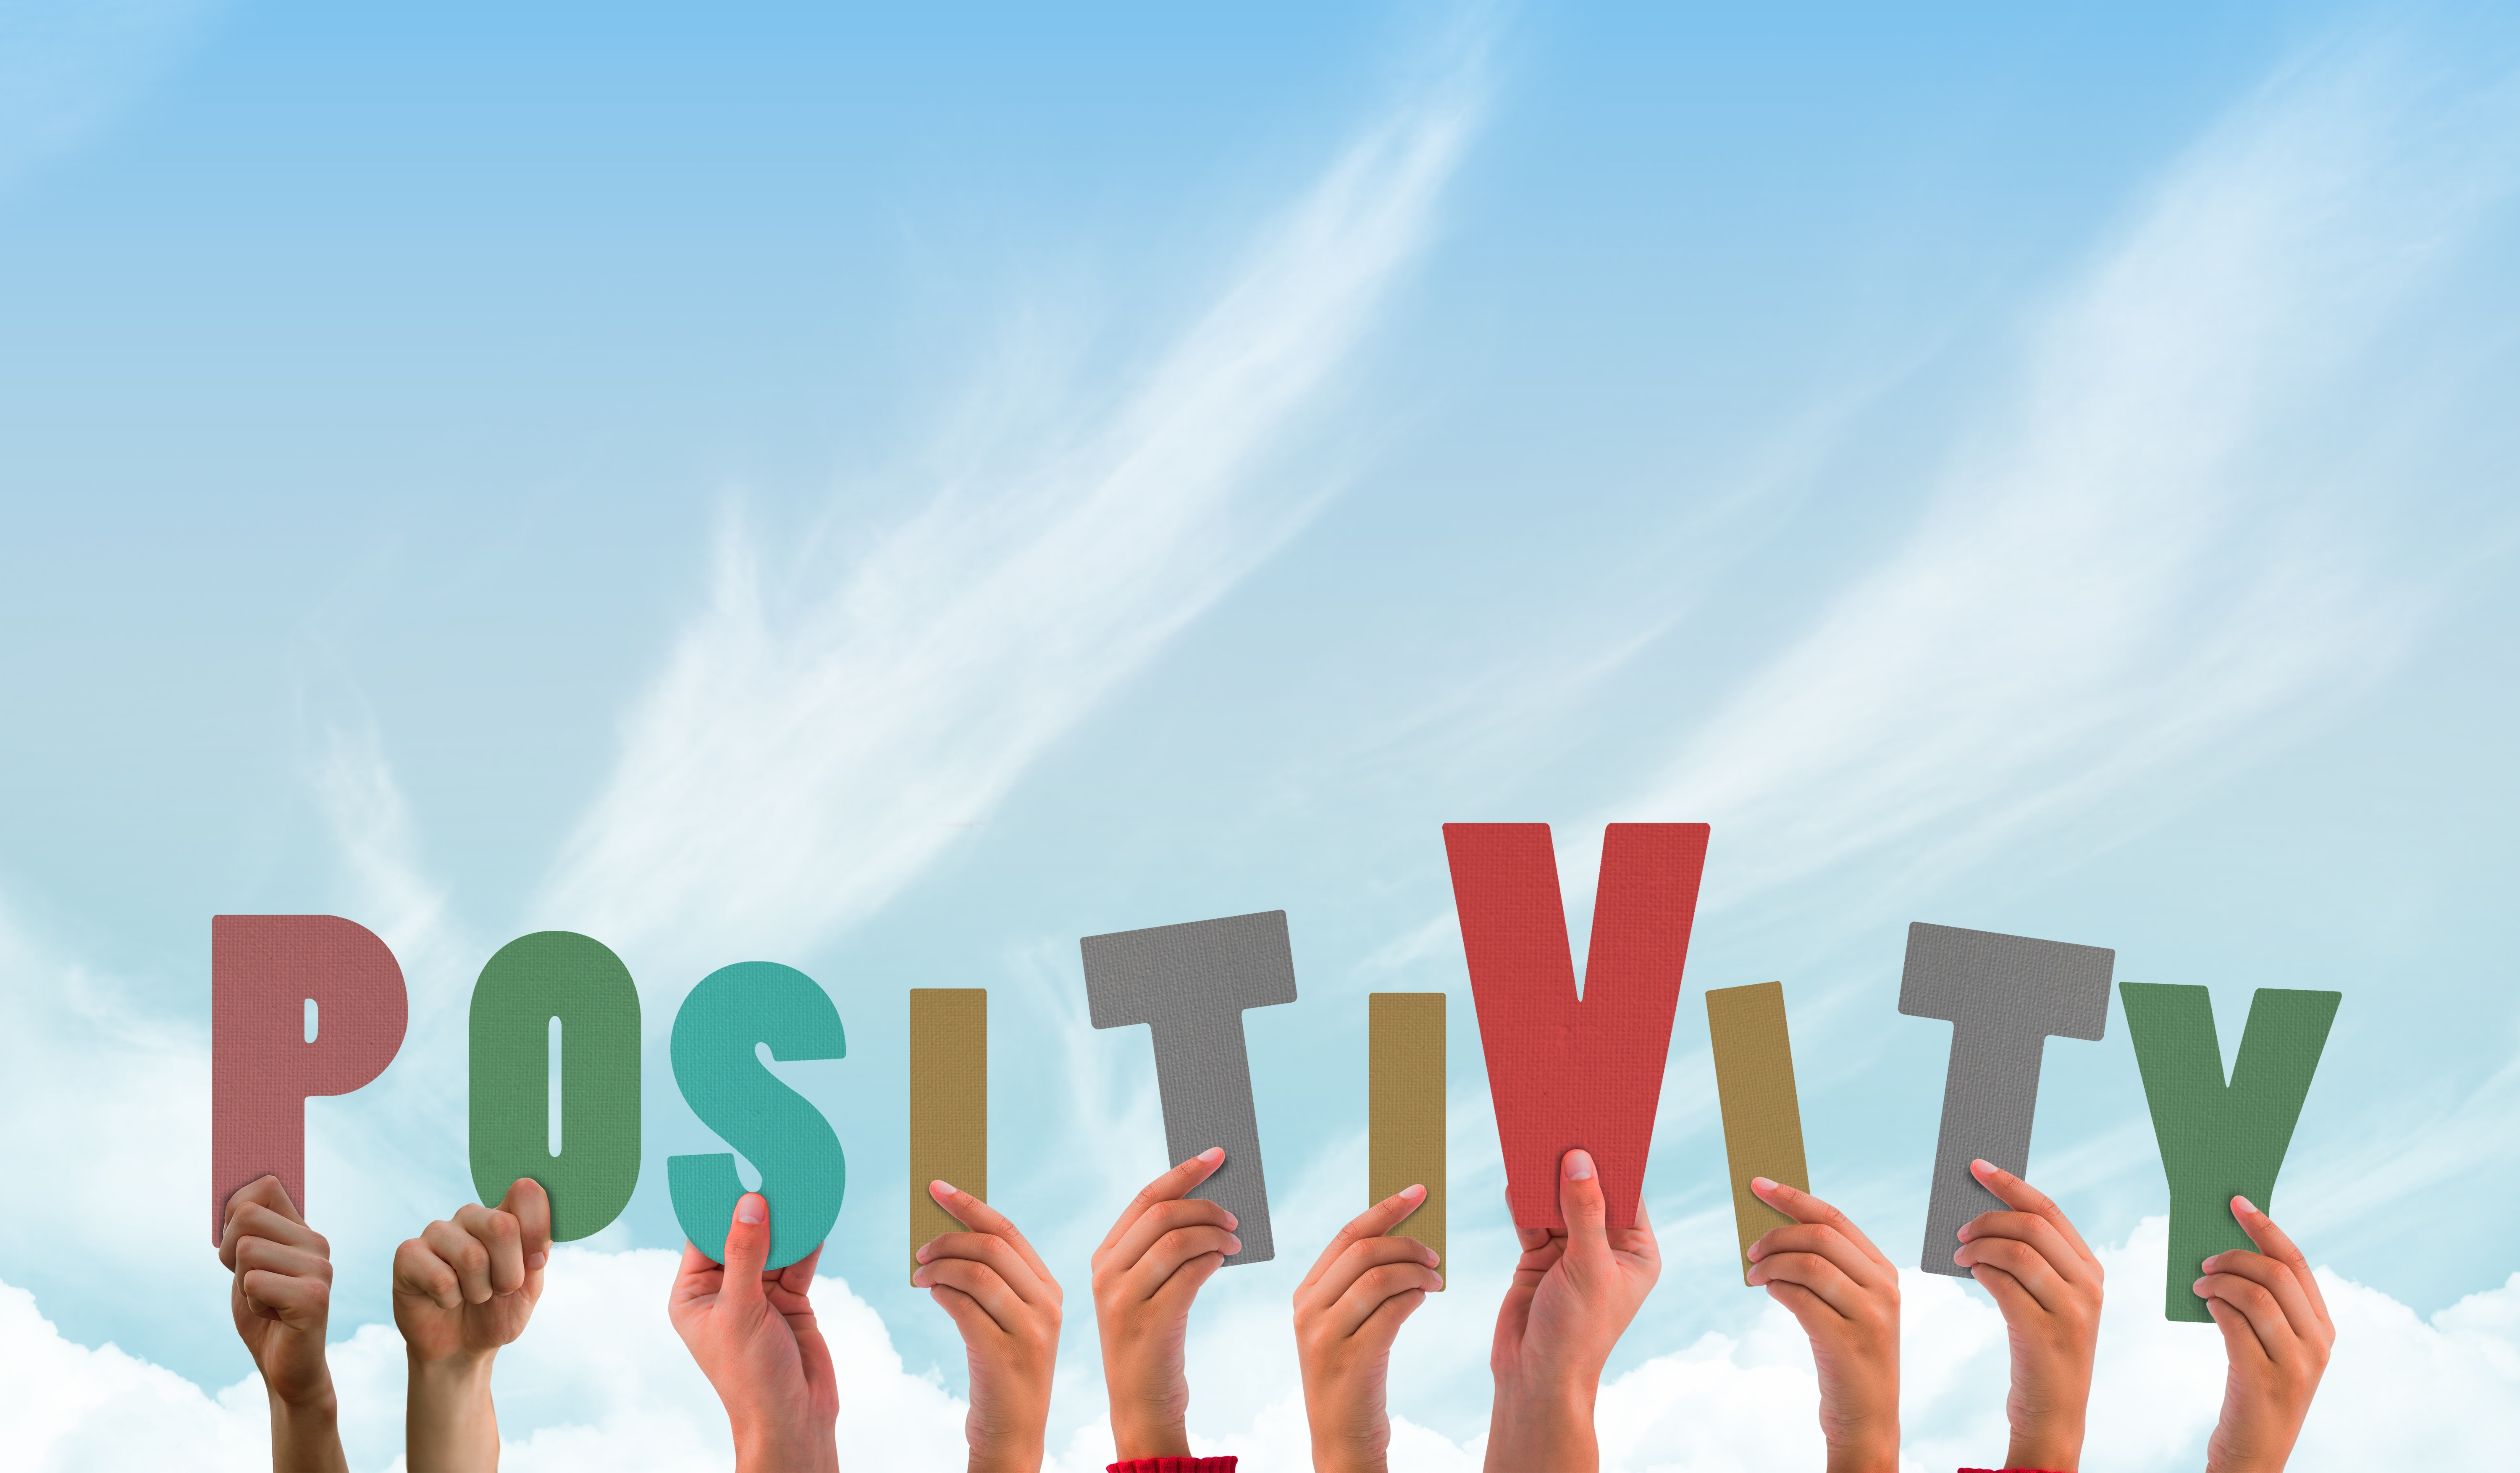 Content production, COVID-19 and positivity